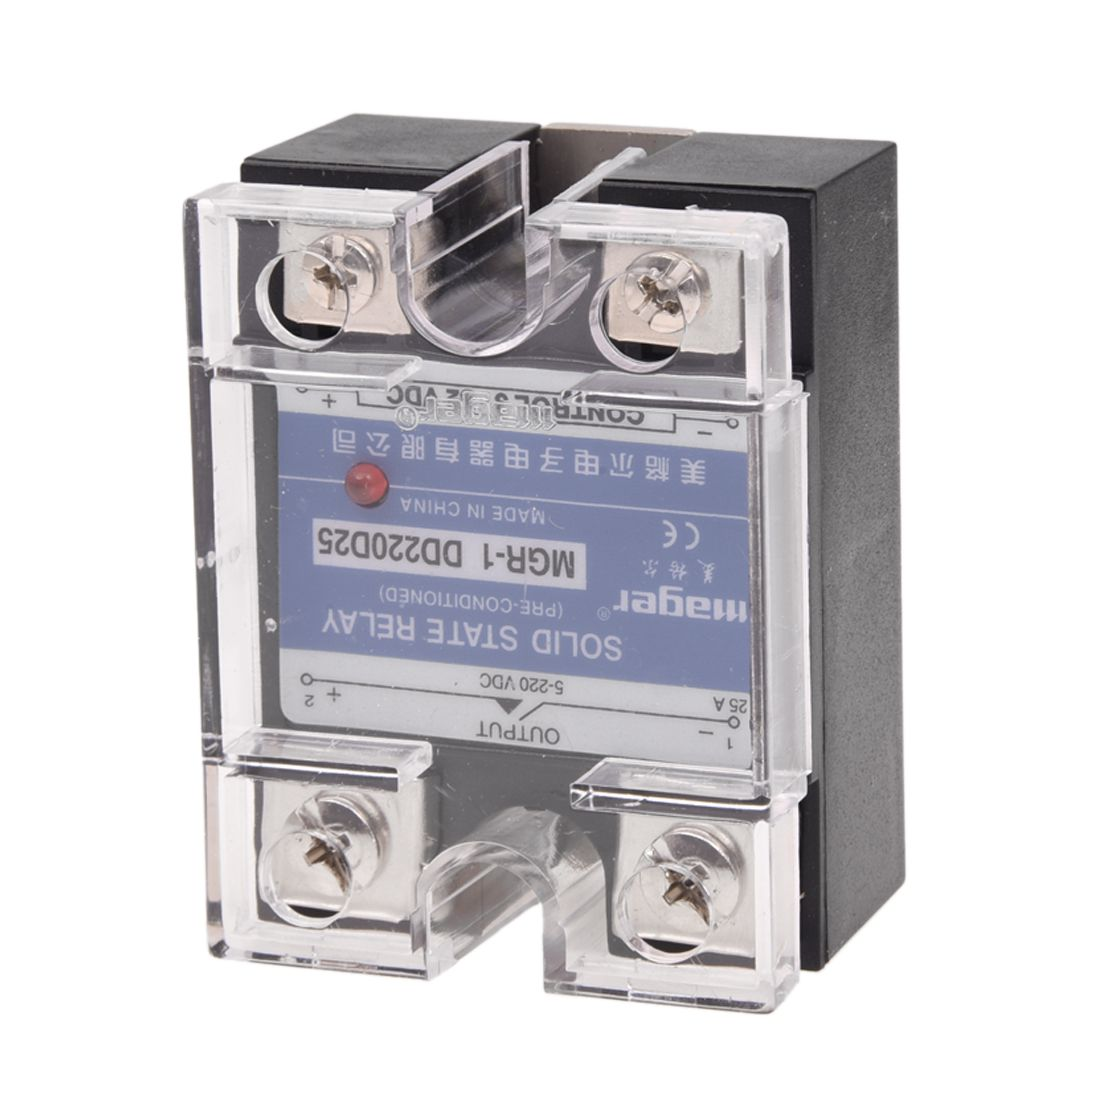 DC to DC Single Phase Solid State Relay SSR 25A 3-32V 5-220V w Transparent Cover single phase solid state relay ssr 25da 25a 3 32v dc 90 480vac heat sink